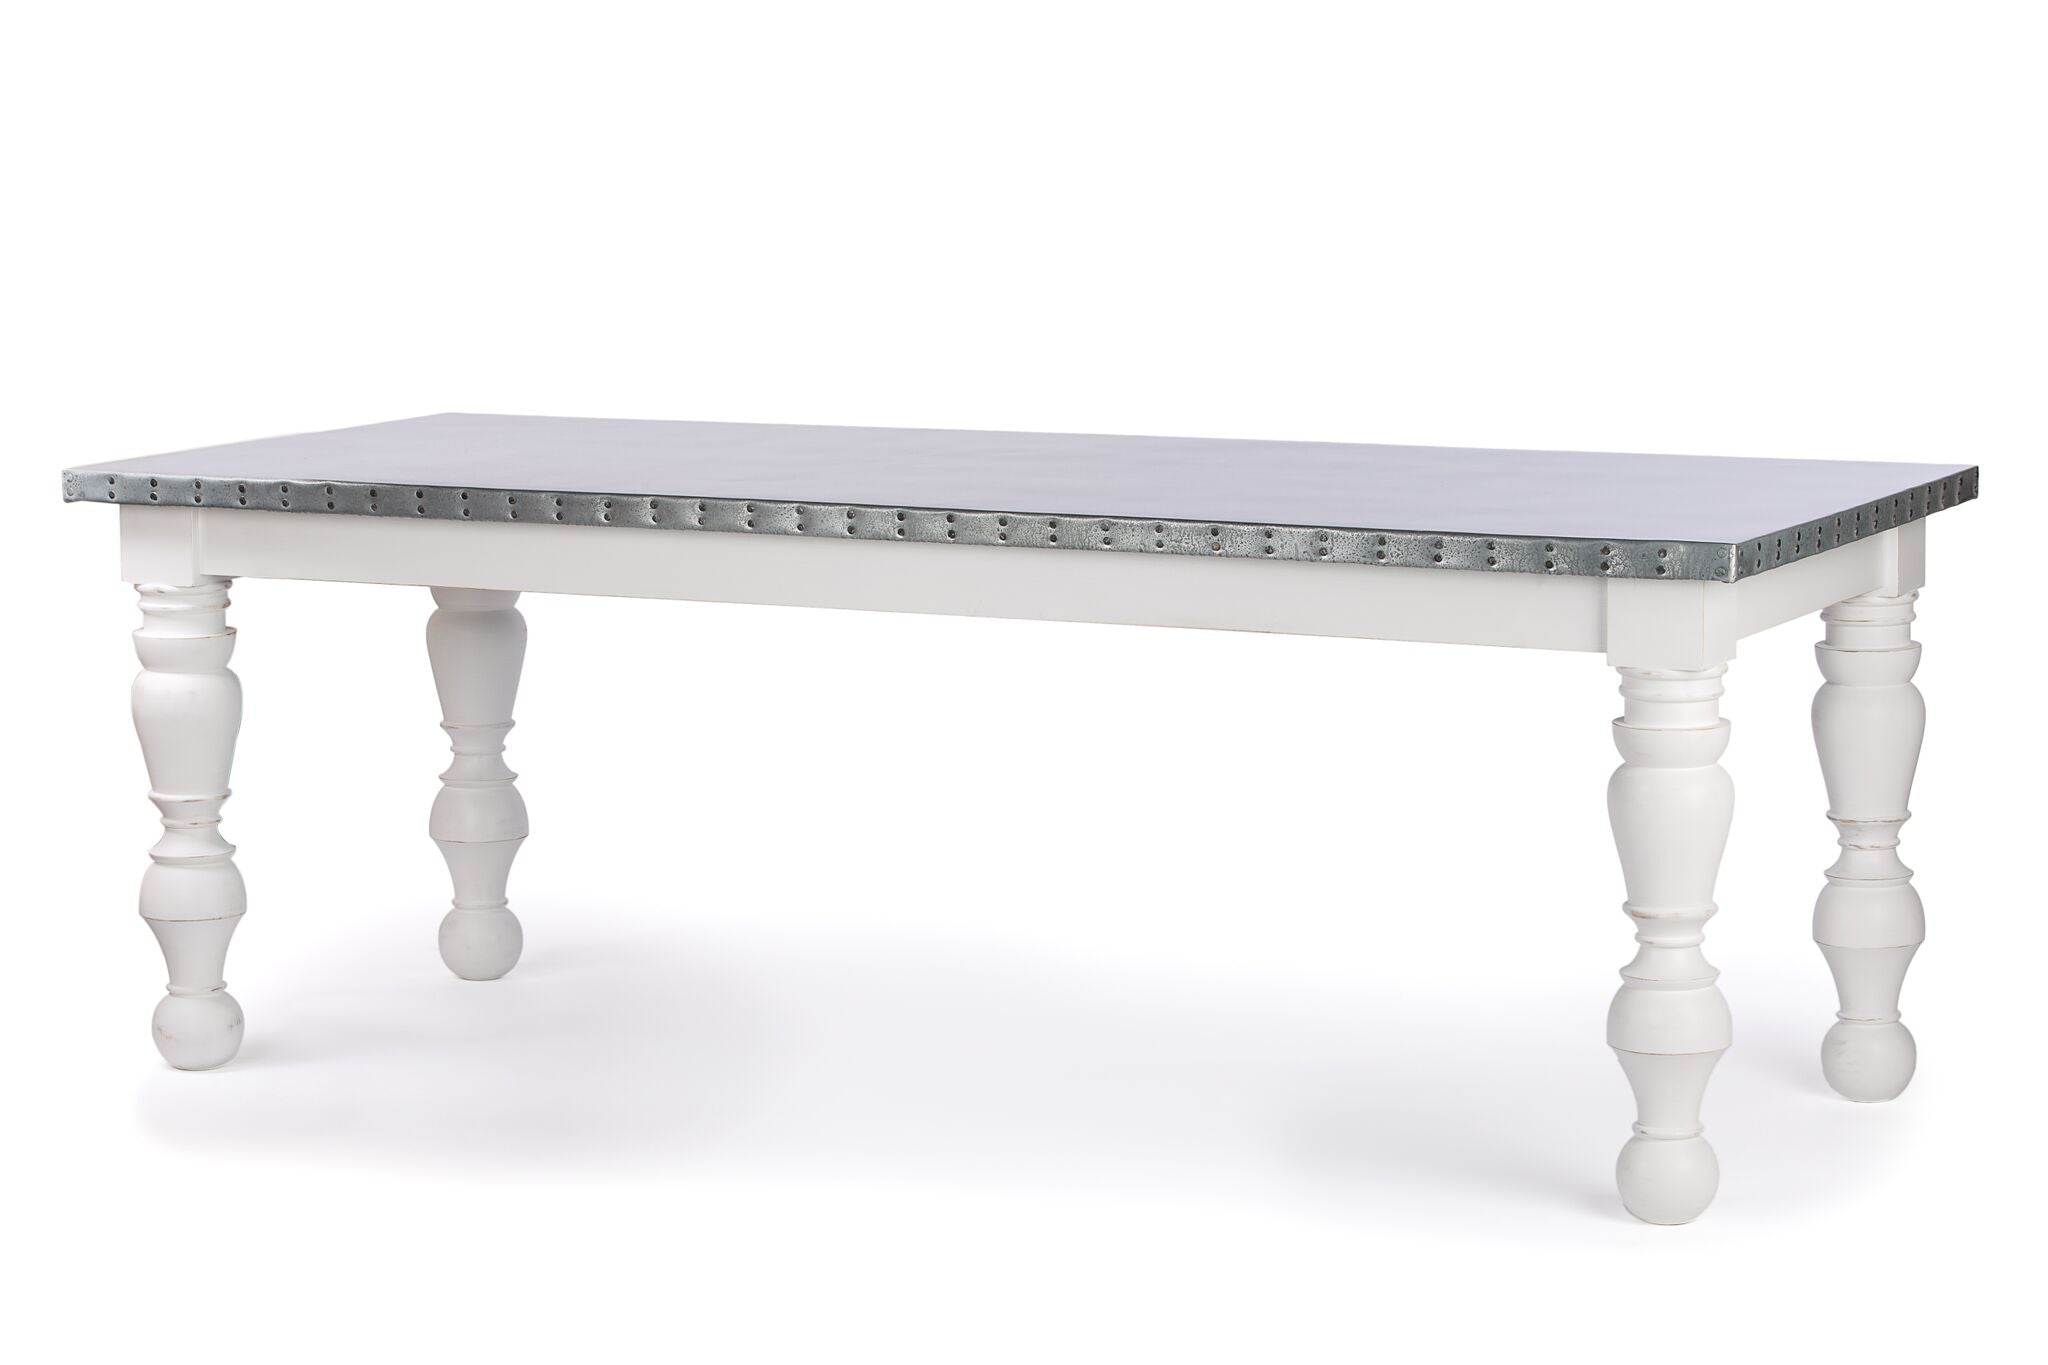 Zinc Rectangular Table | Dauphine Table | CLASSIC | Natural Ash | CUSTOM SIZE | 2"